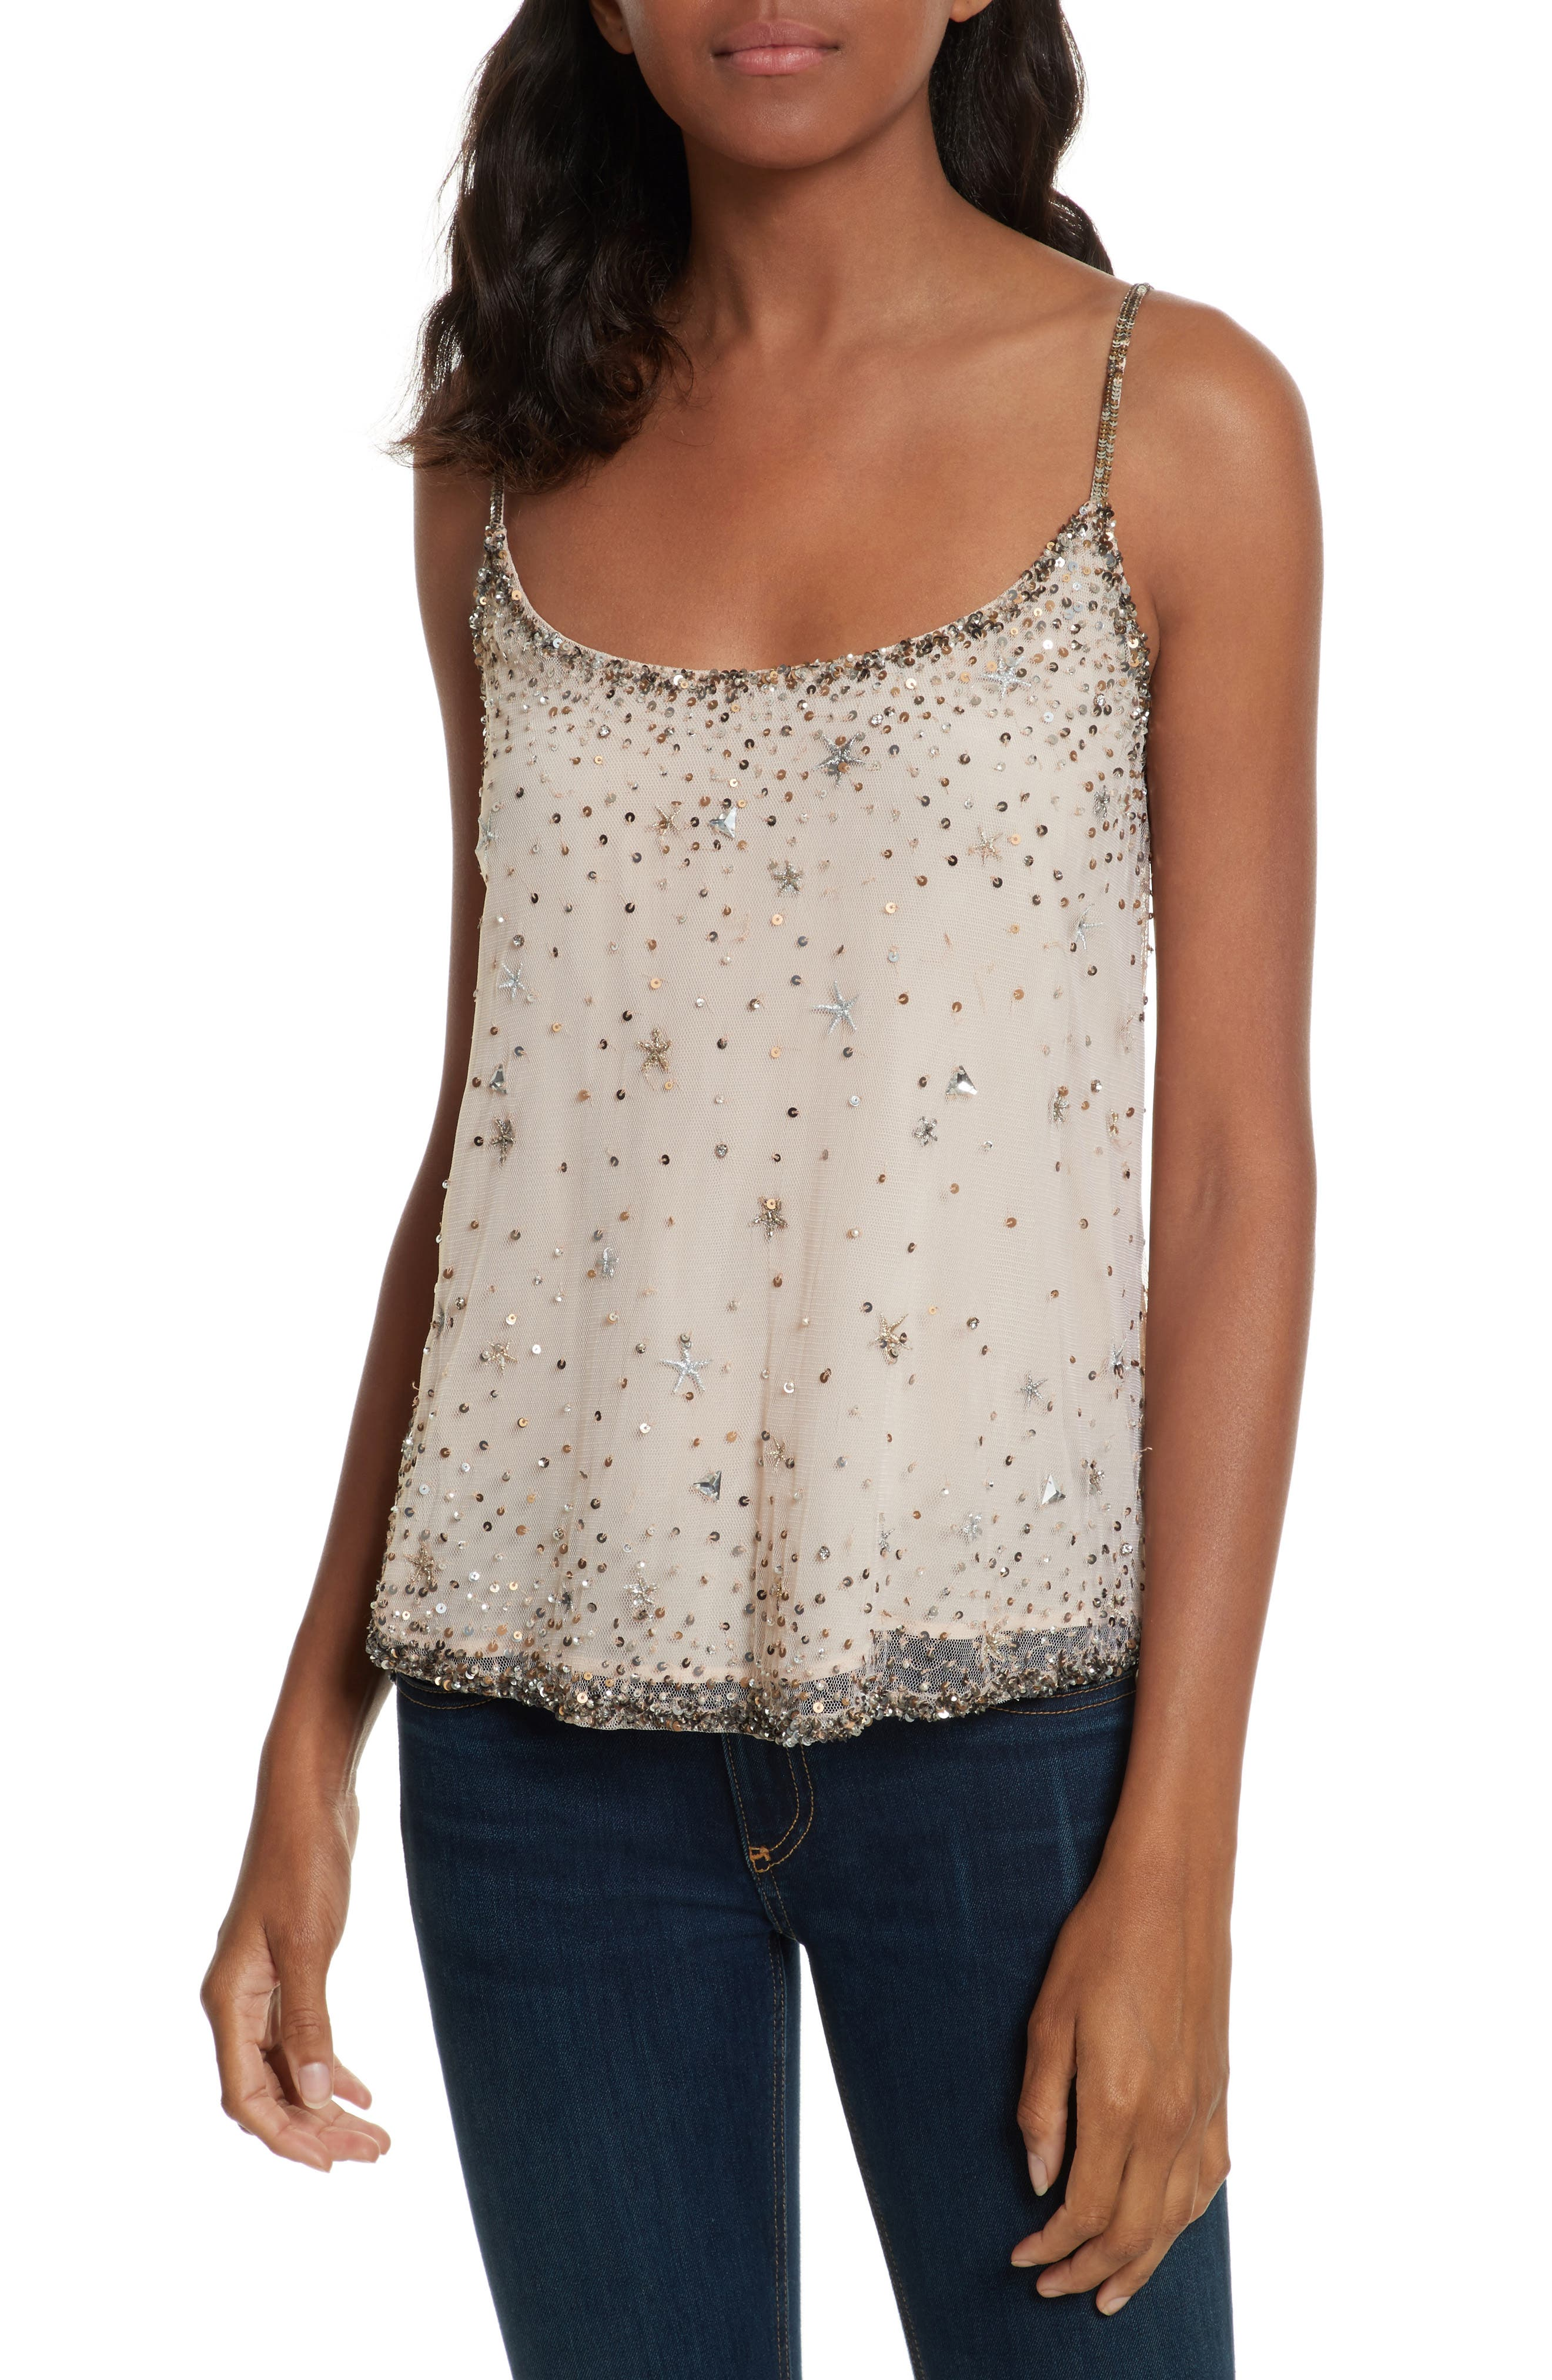 Garlen Beaded Camisole,                             Main thumbnail 1, color,                             Champagne